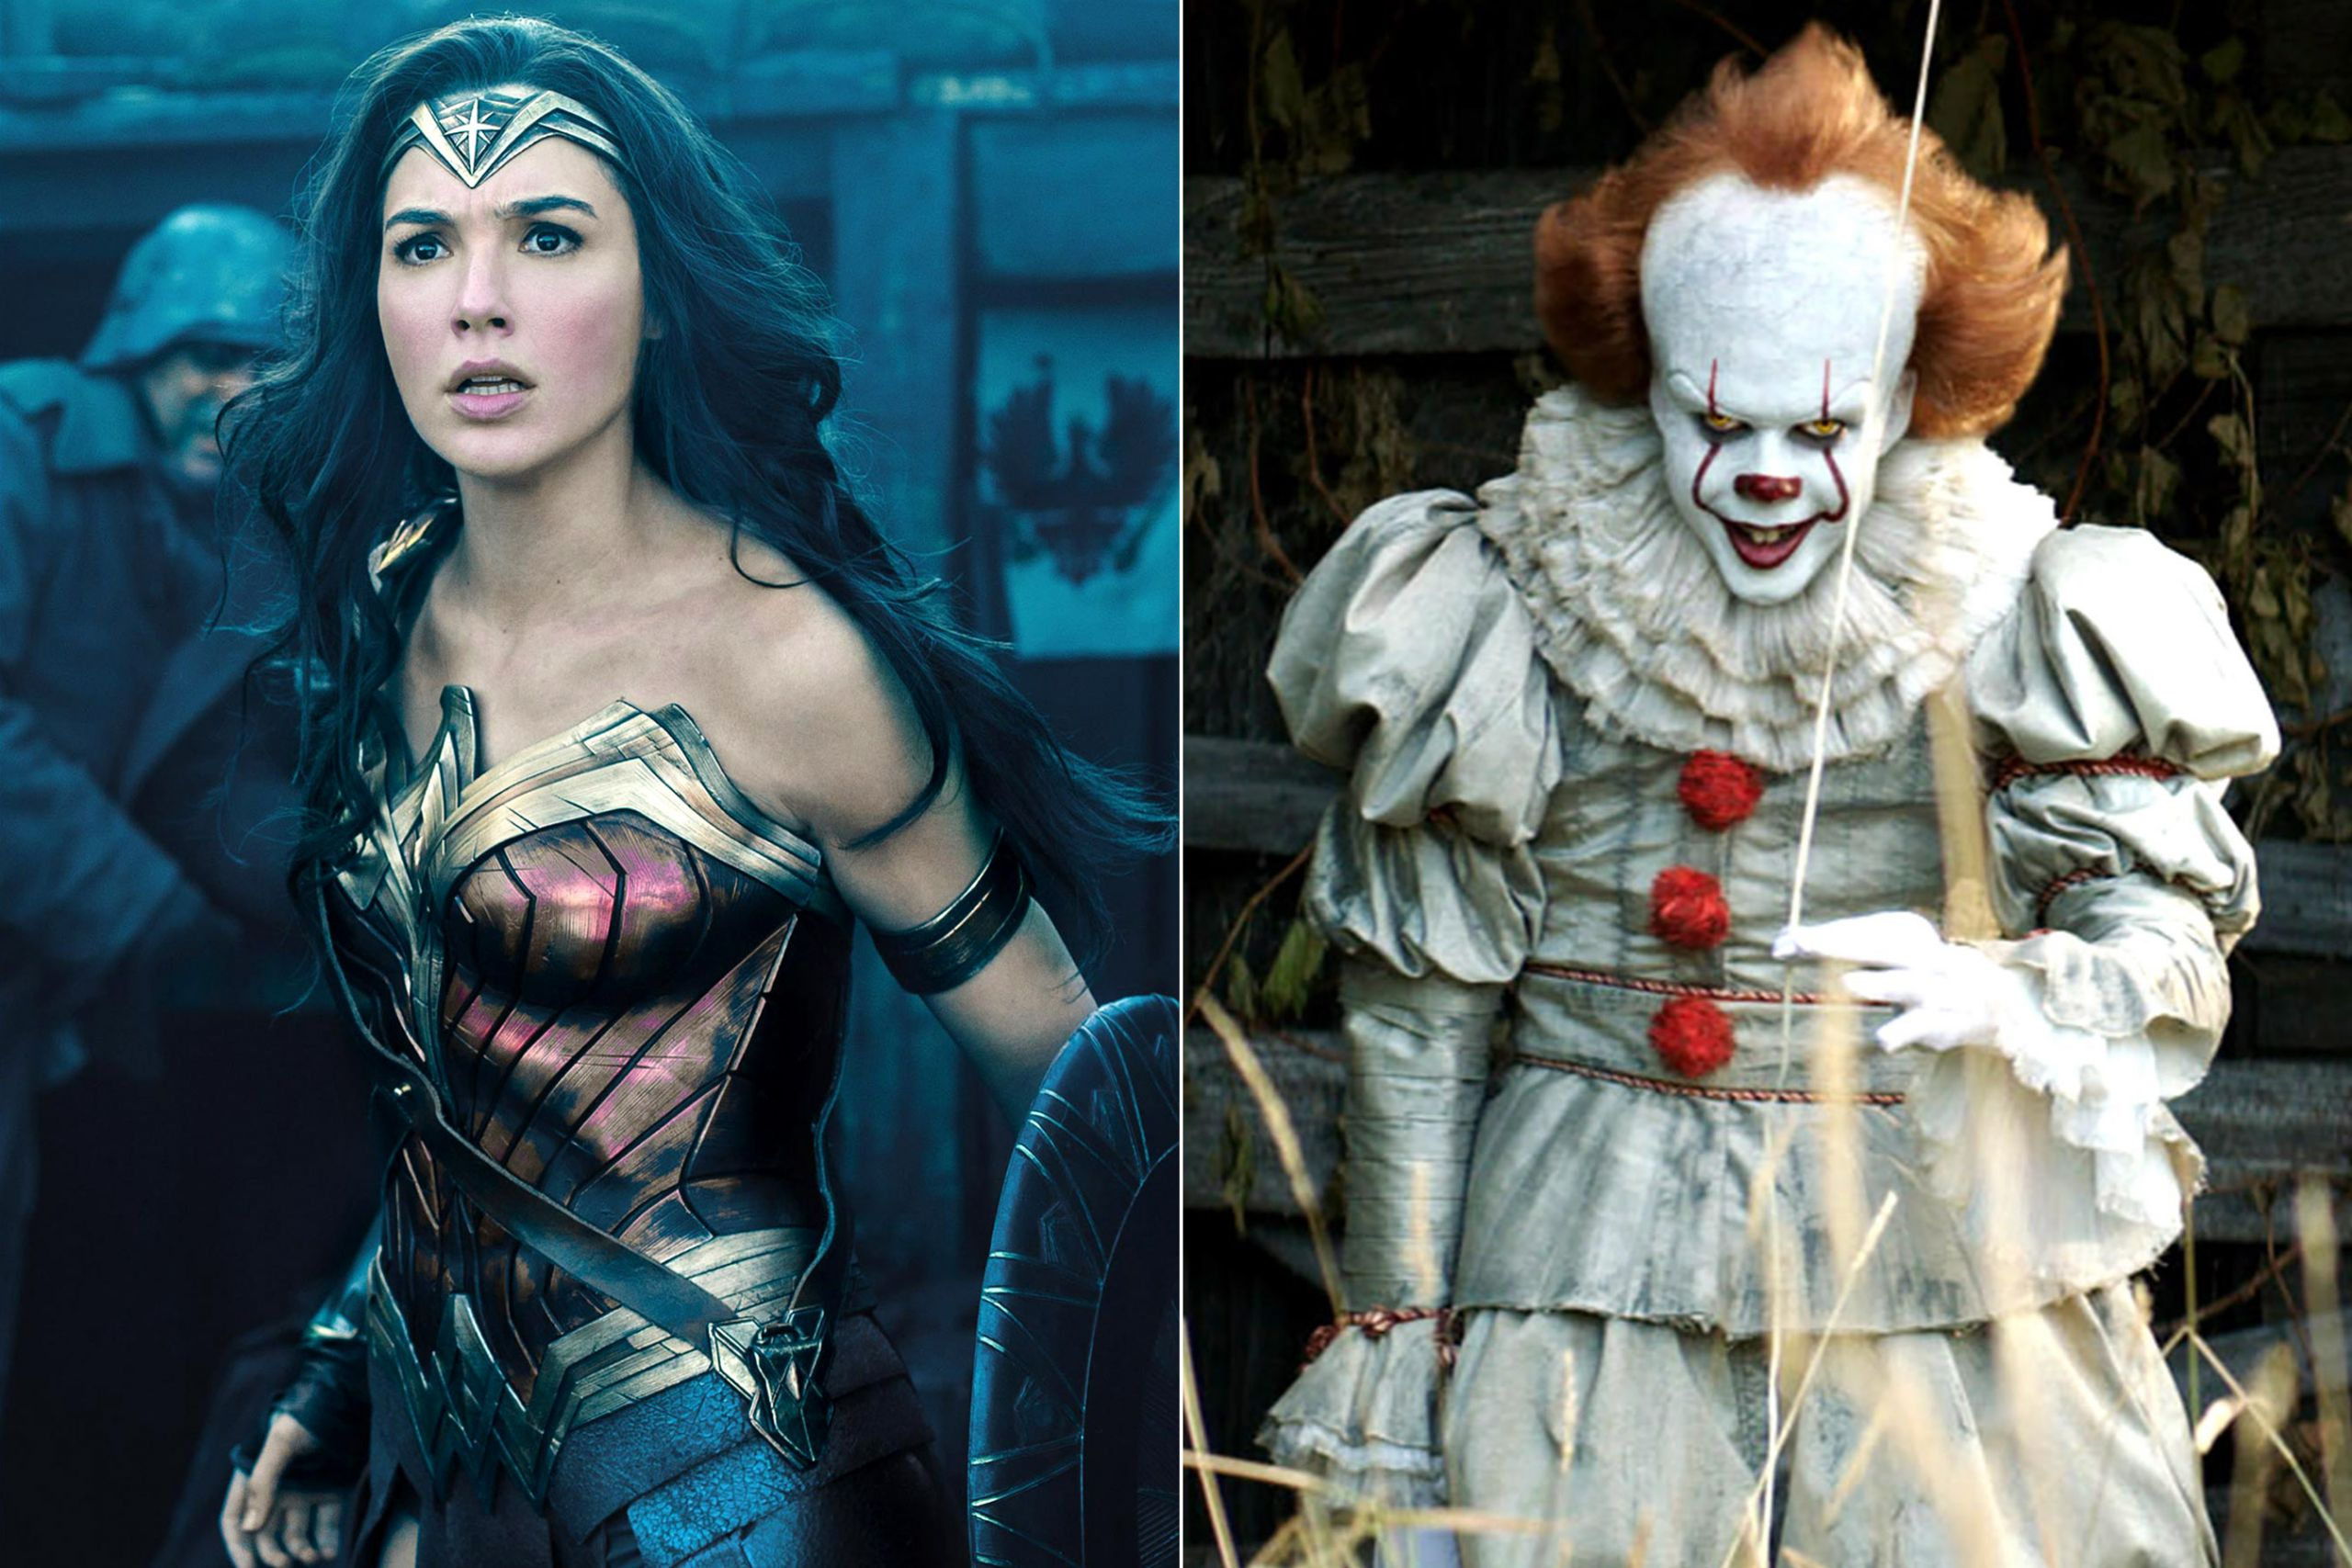 wonder woman pennywise halloween costumes 2017